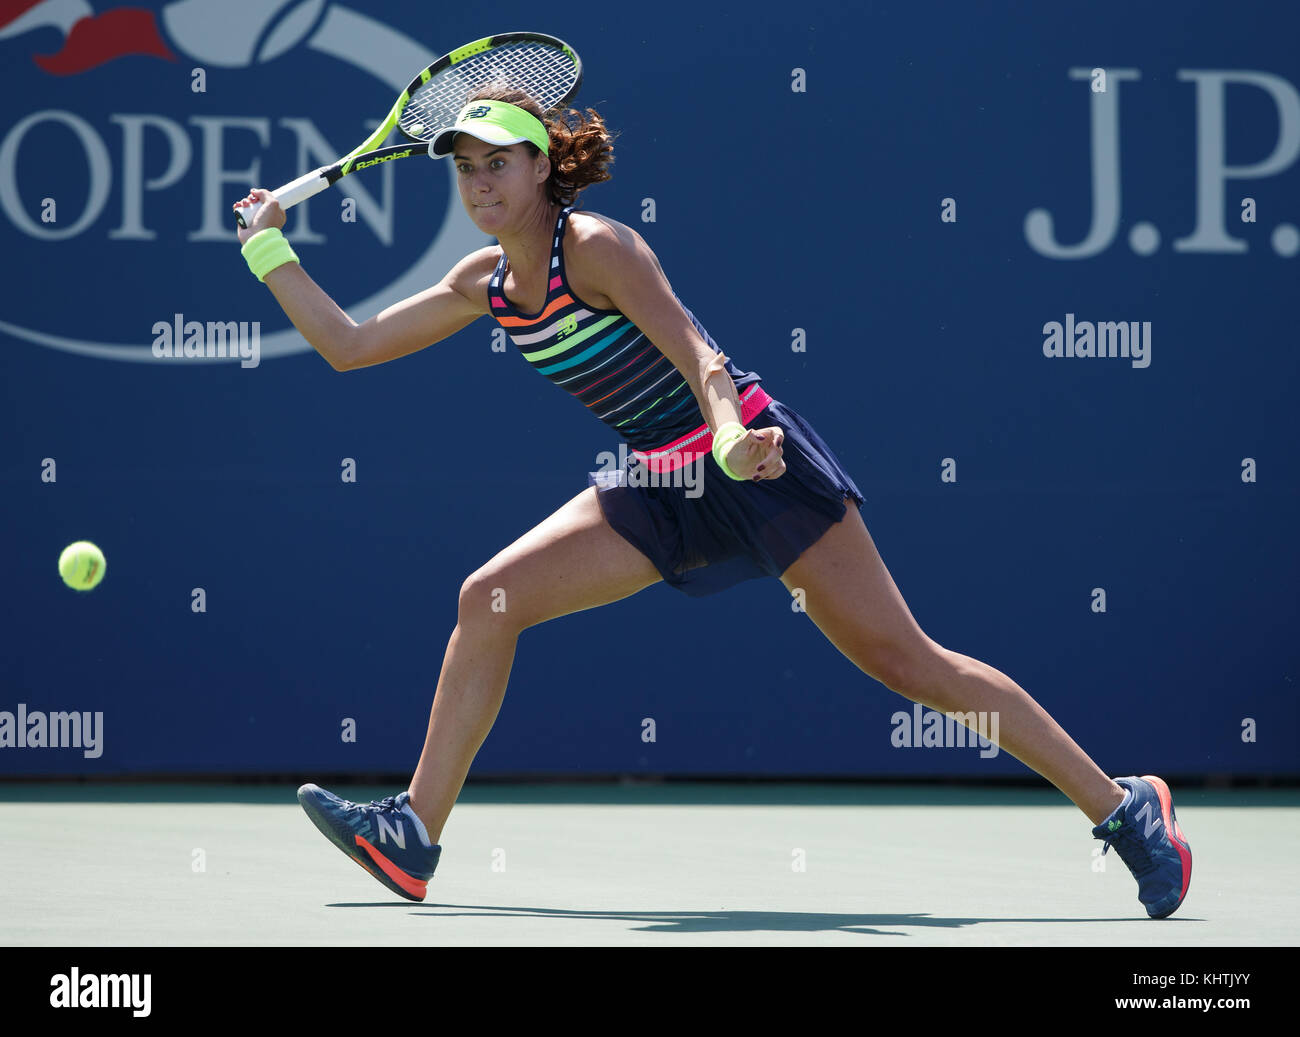 Romanian tennis player SORANA CIRSTEA (ROU) hitting a forehand shot during women's singles match in US Open - Stock Image